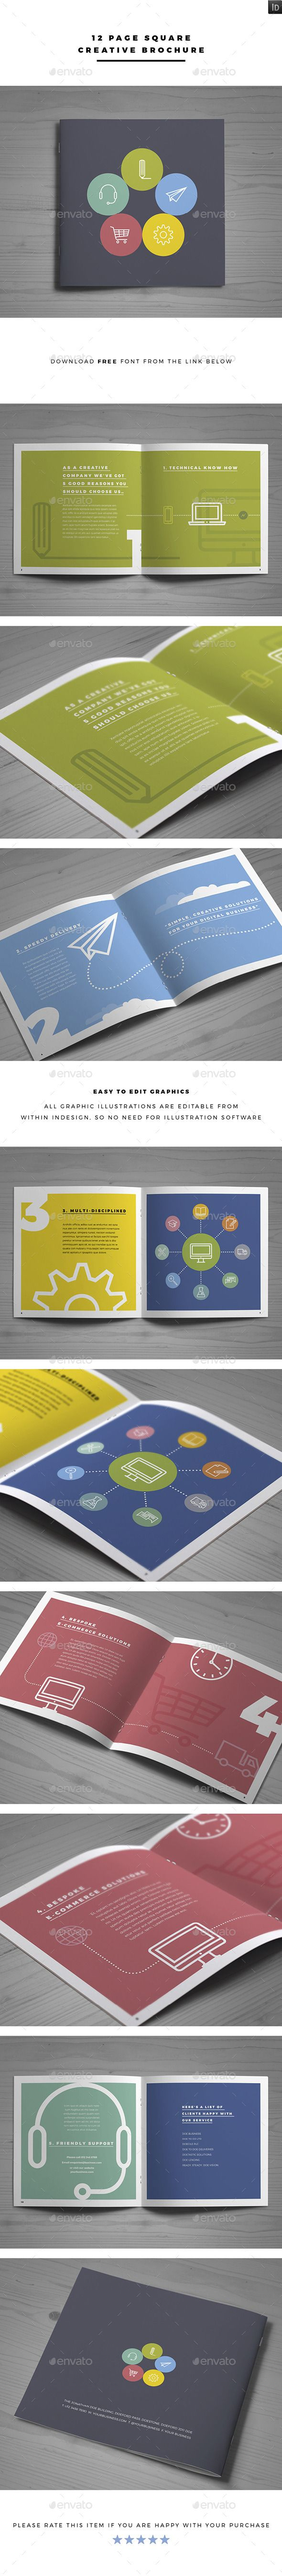 12 Page Square Creative Brochure - Brochures Print Templates